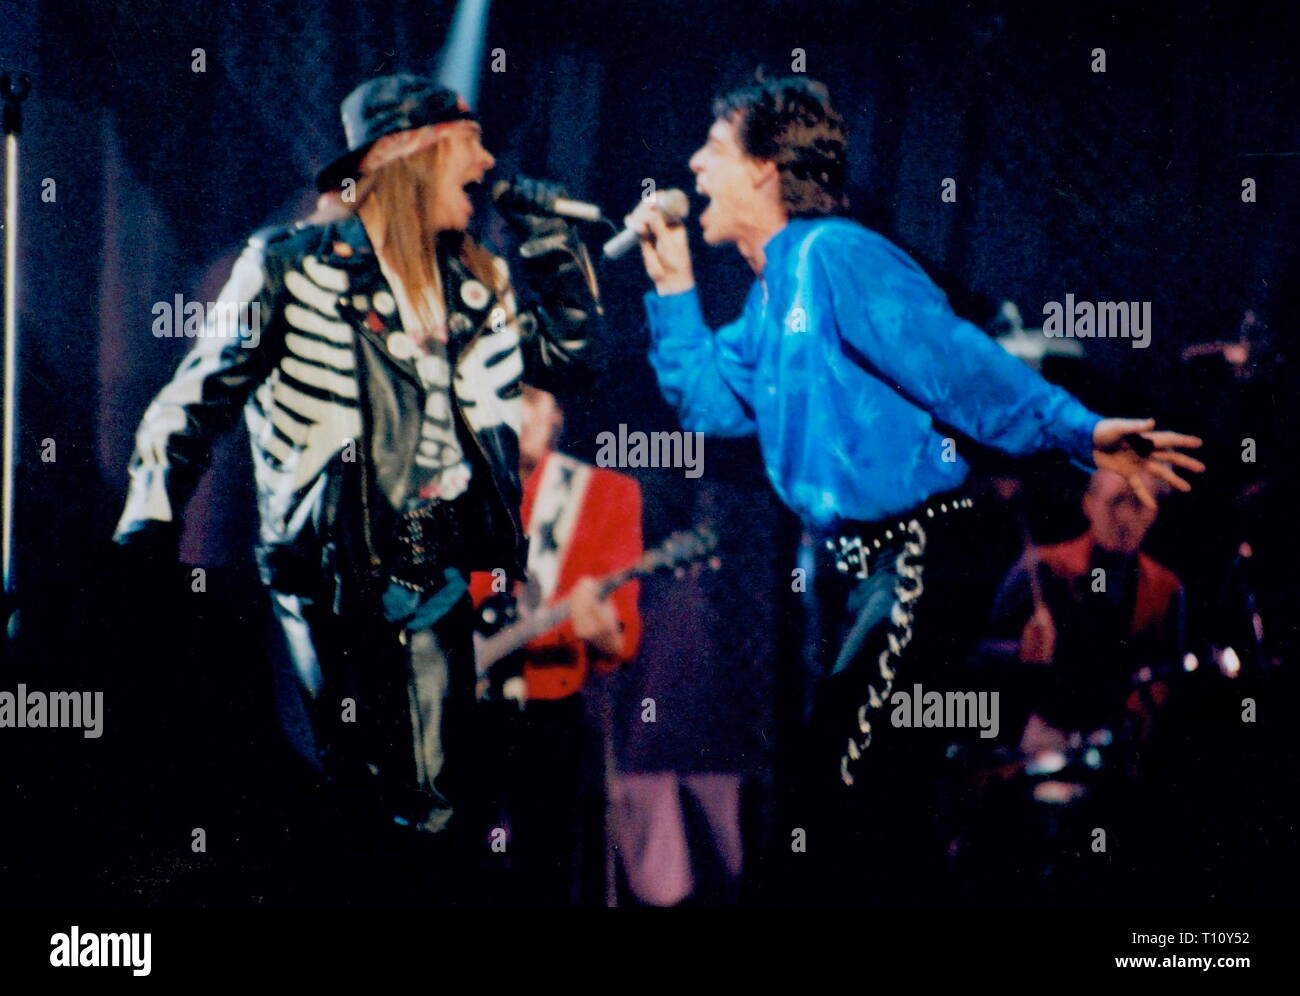 Axl Rose Stock Photos & Axl Rose Stock Images - Alamy